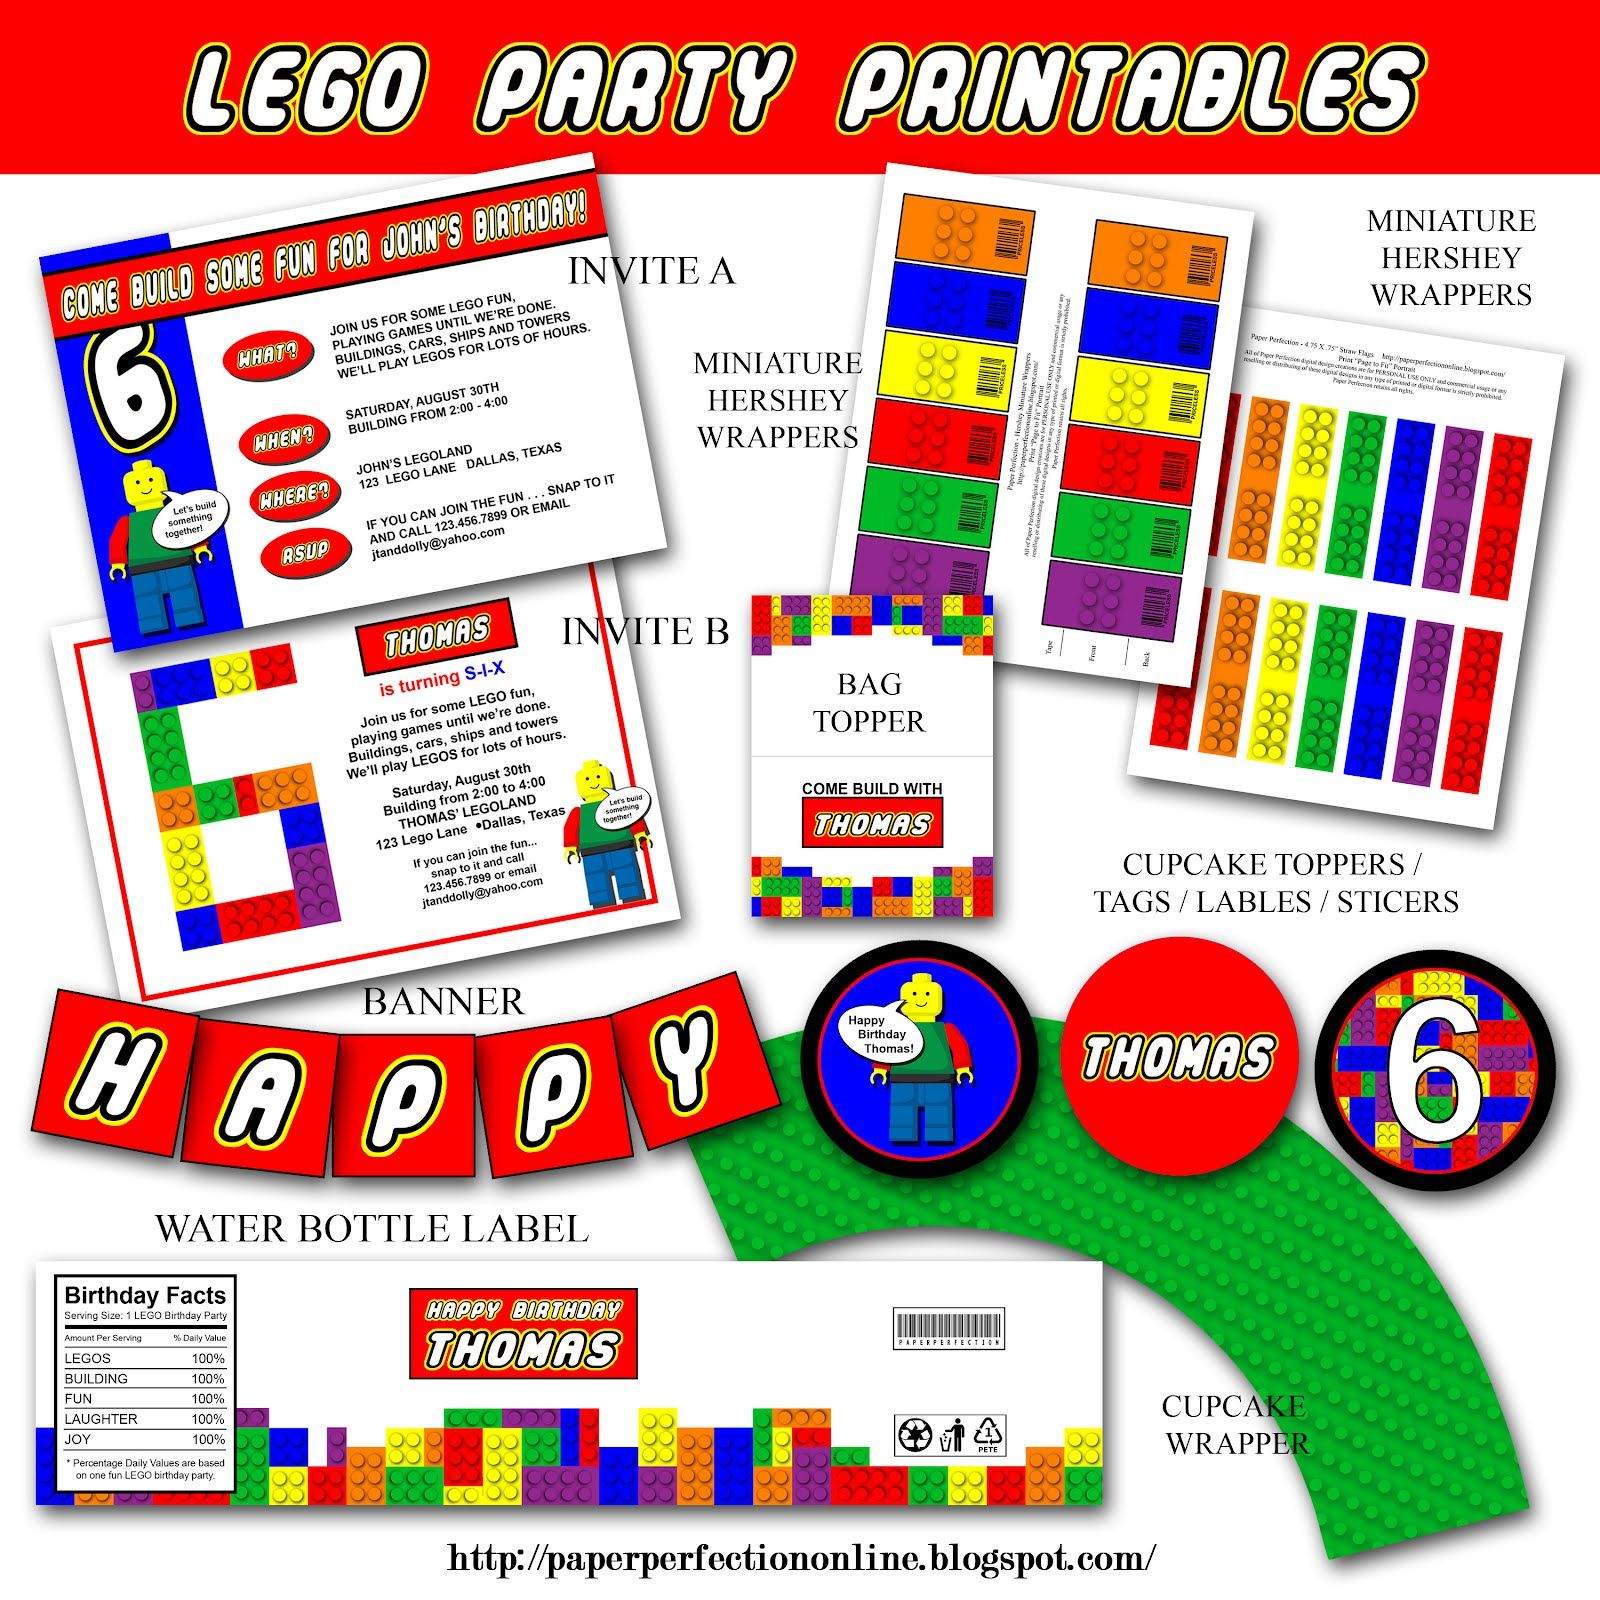 Paper Perfection: LEGO PARTY INVITATION AND PARTY PRINTABLES ...